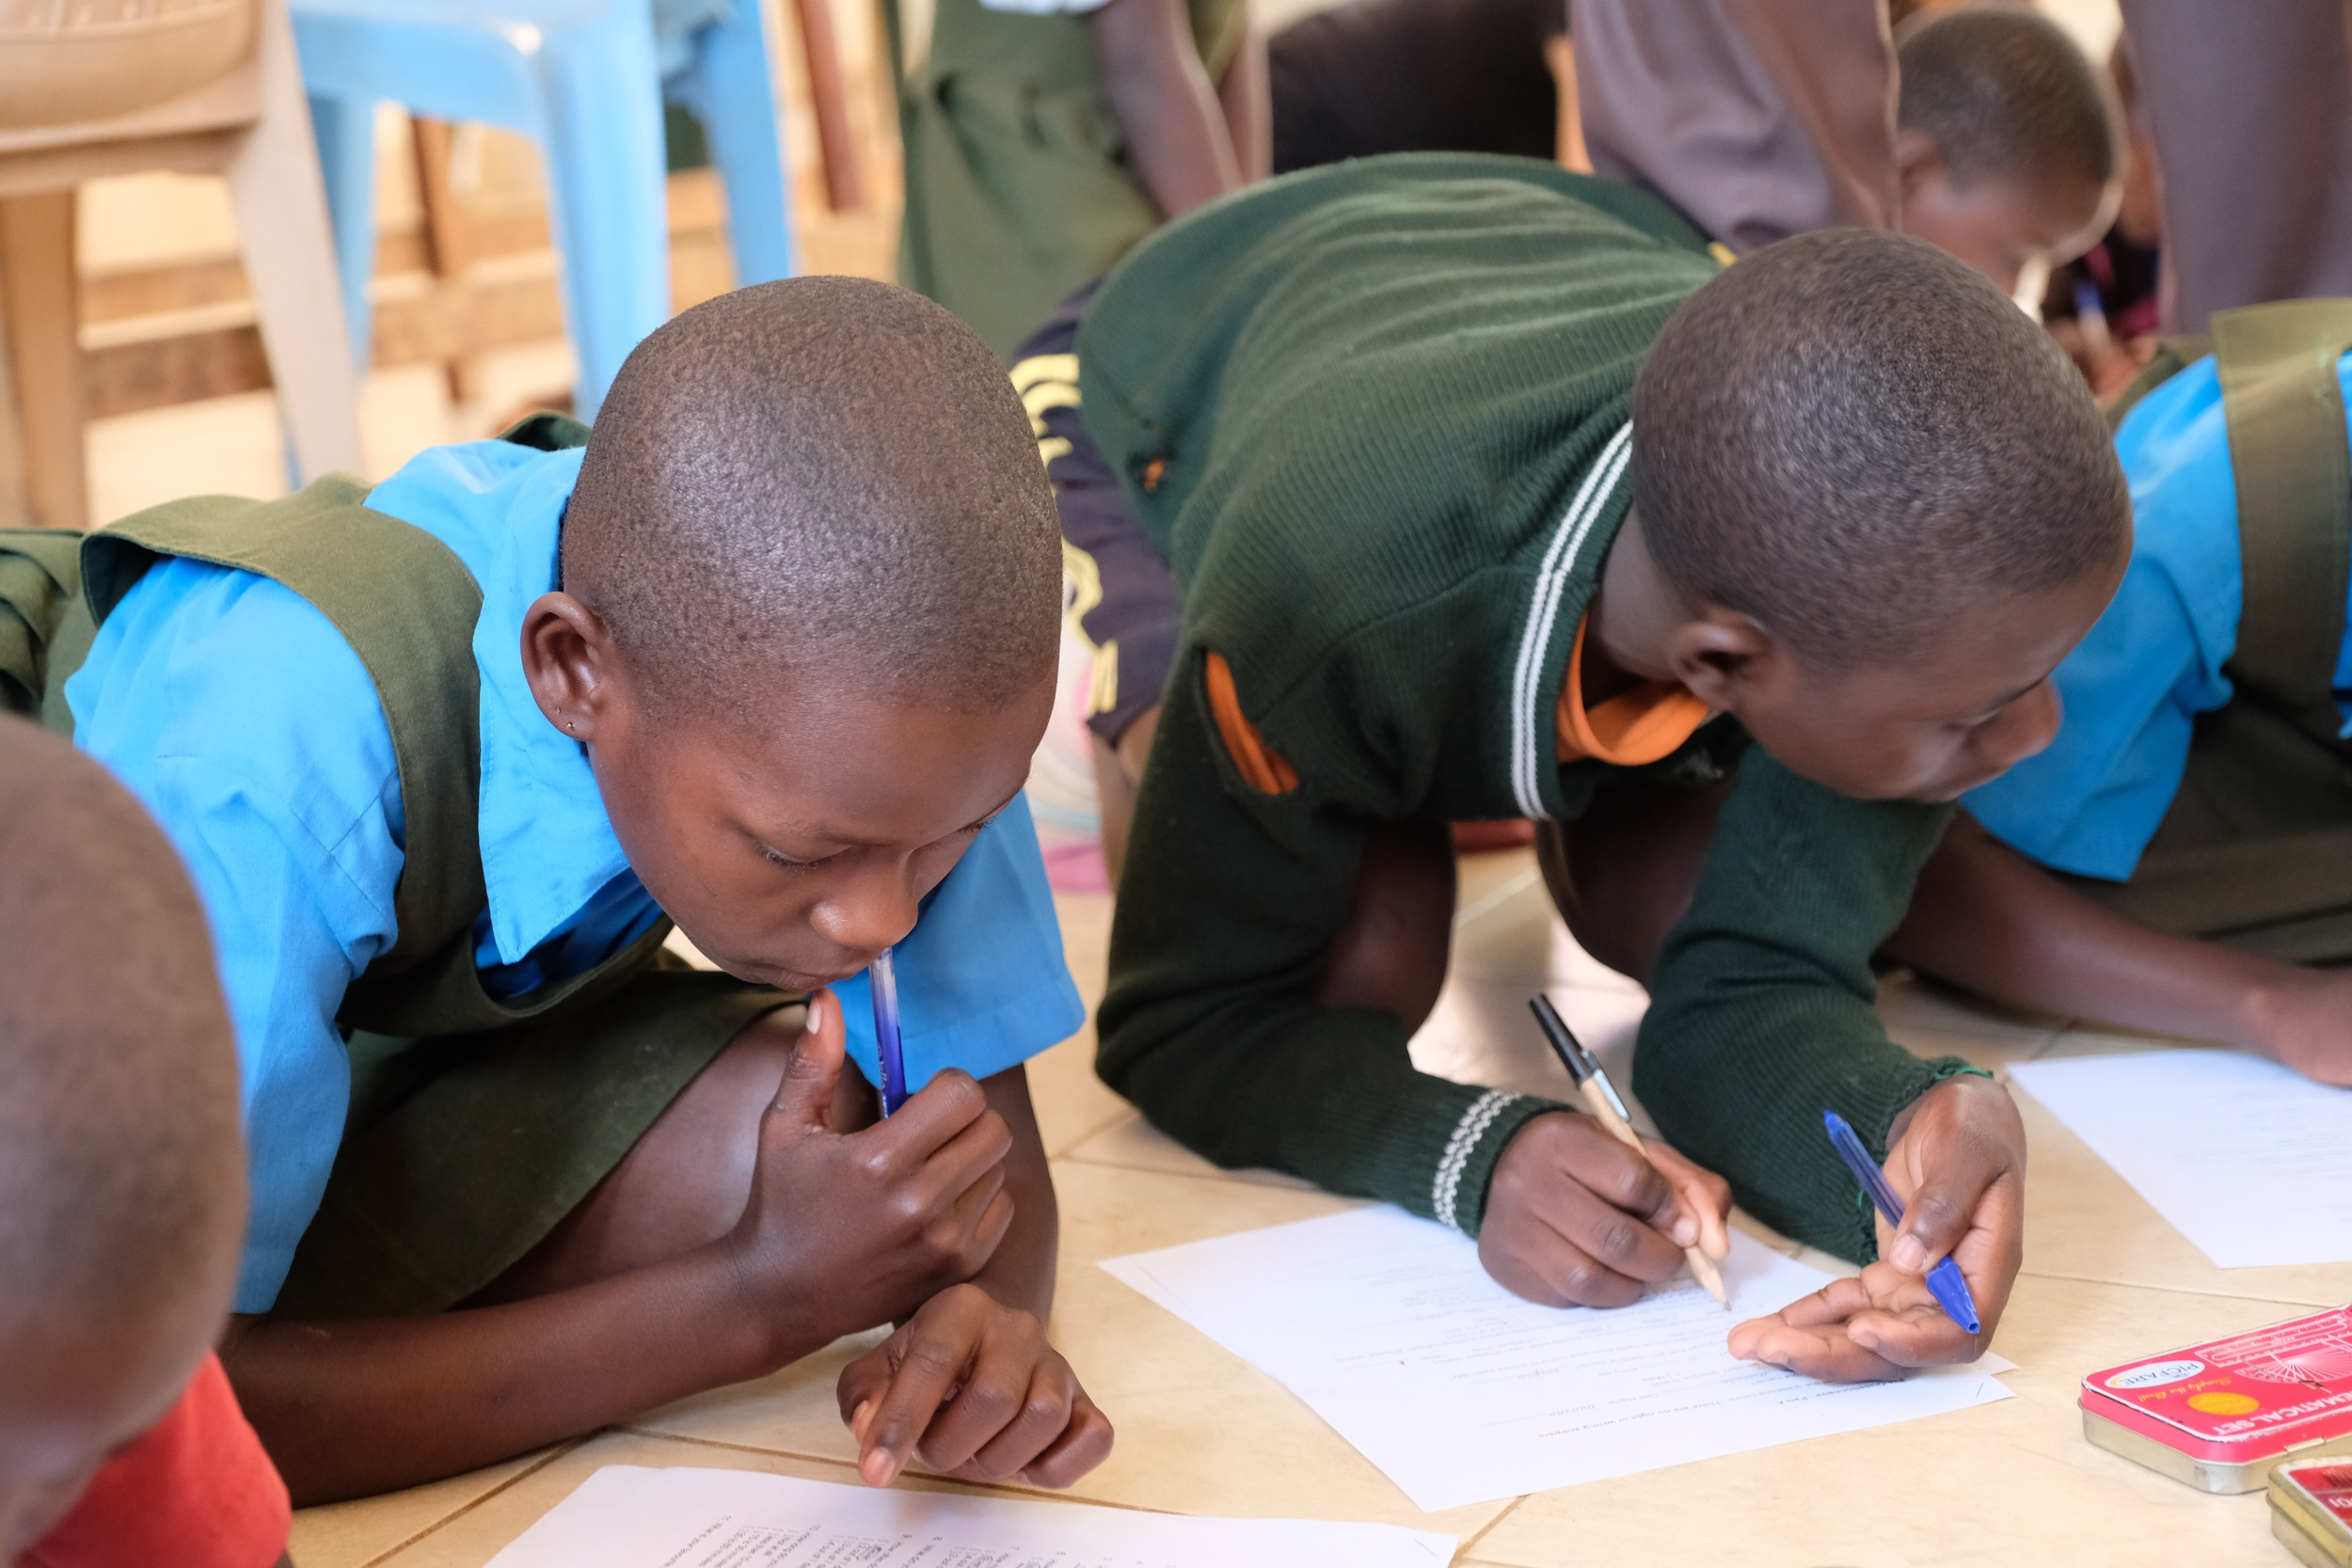 Grade 2 students from Hadassa Primary School filling out a TWSB reading questionnaire.